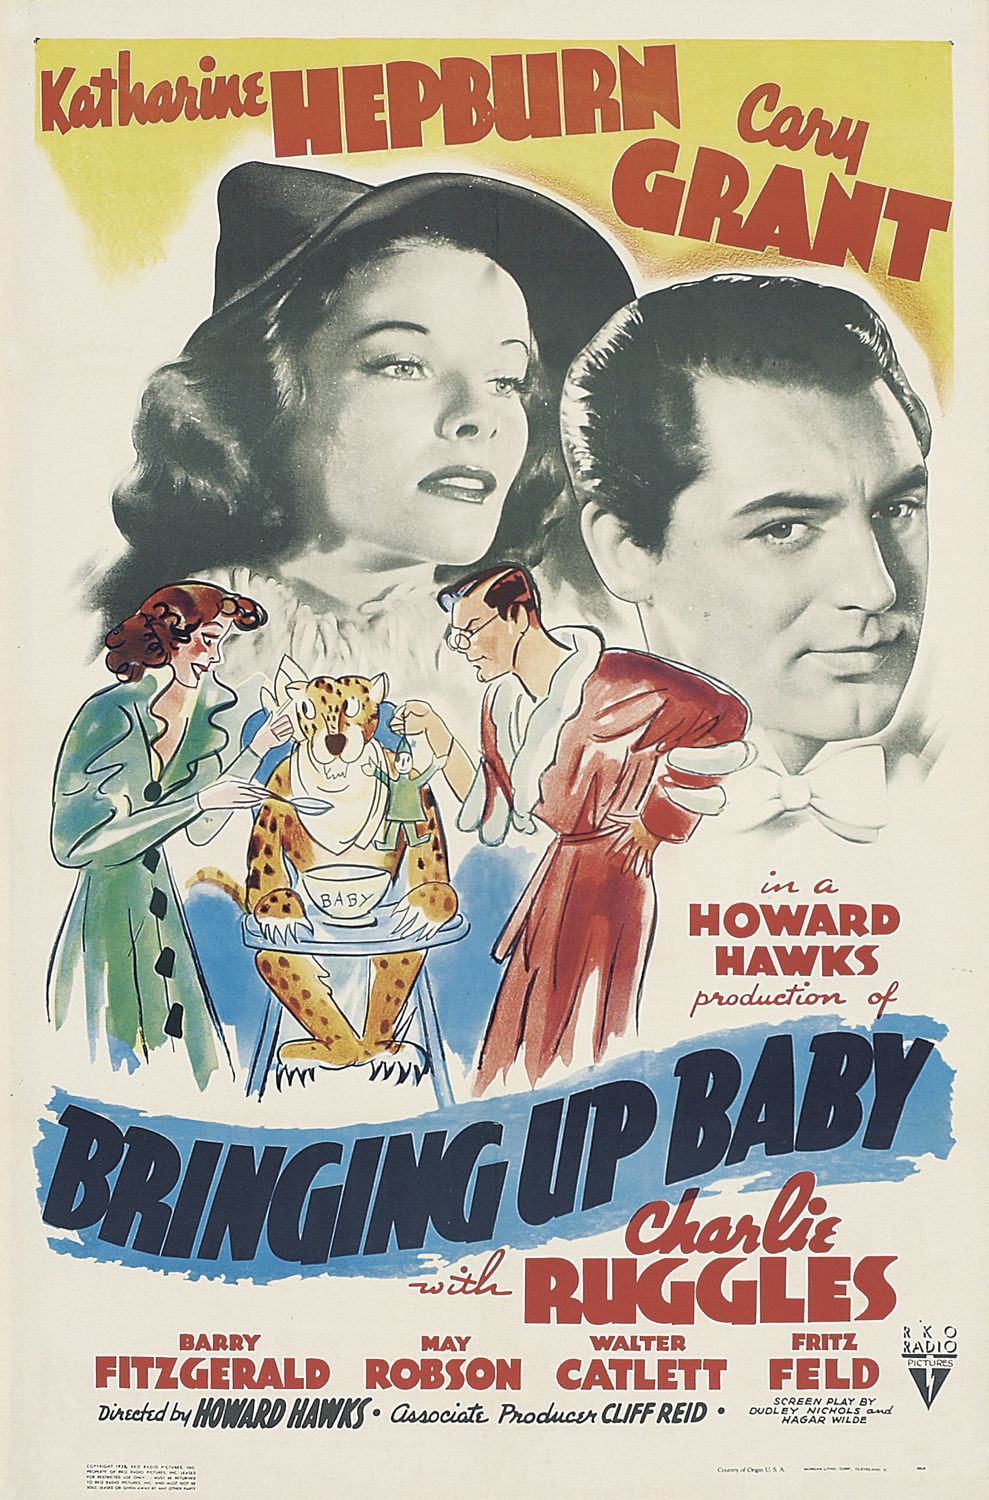 Susanna - Bringing up Baby (1938) - classic film poster